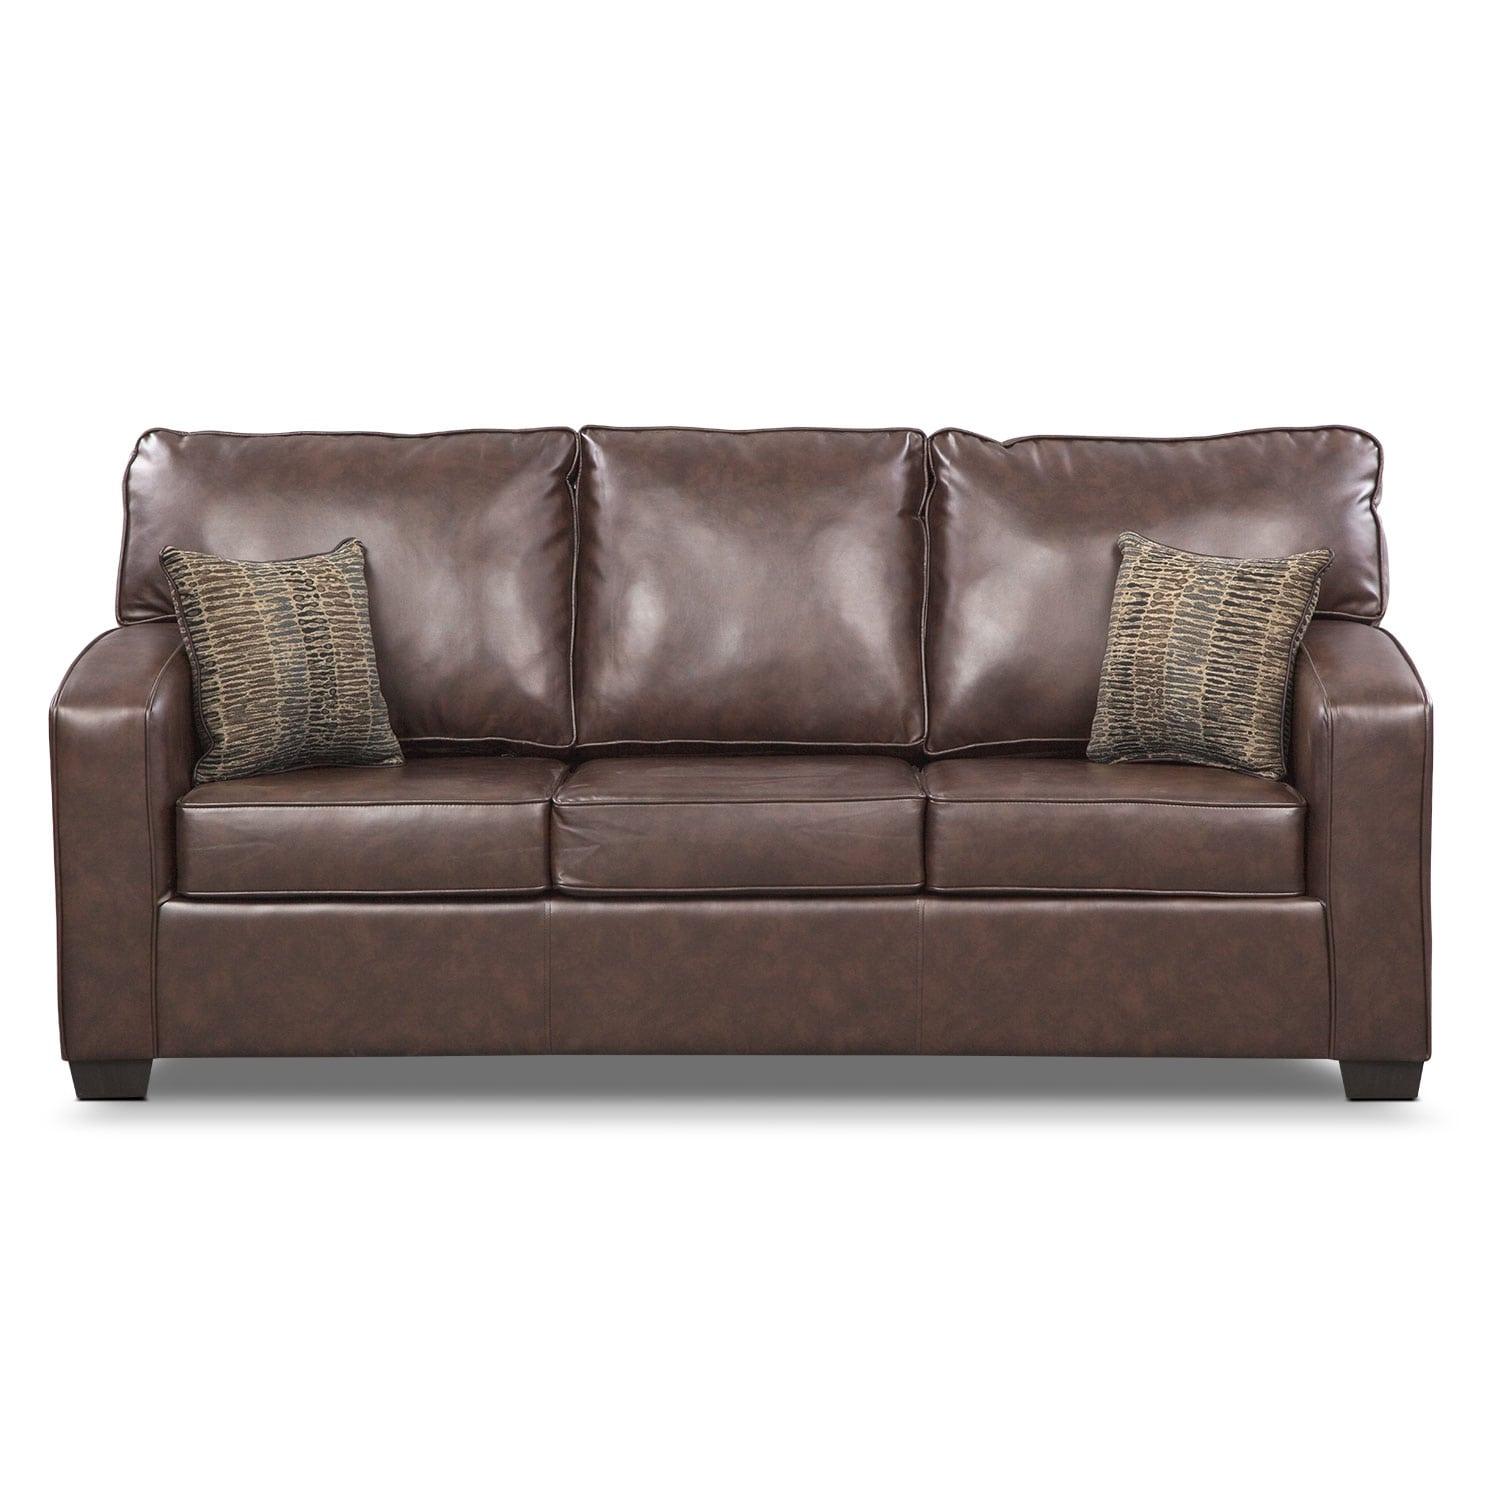 Brookline Queen Memory Foam Sleeper Sofa Value City Furniture